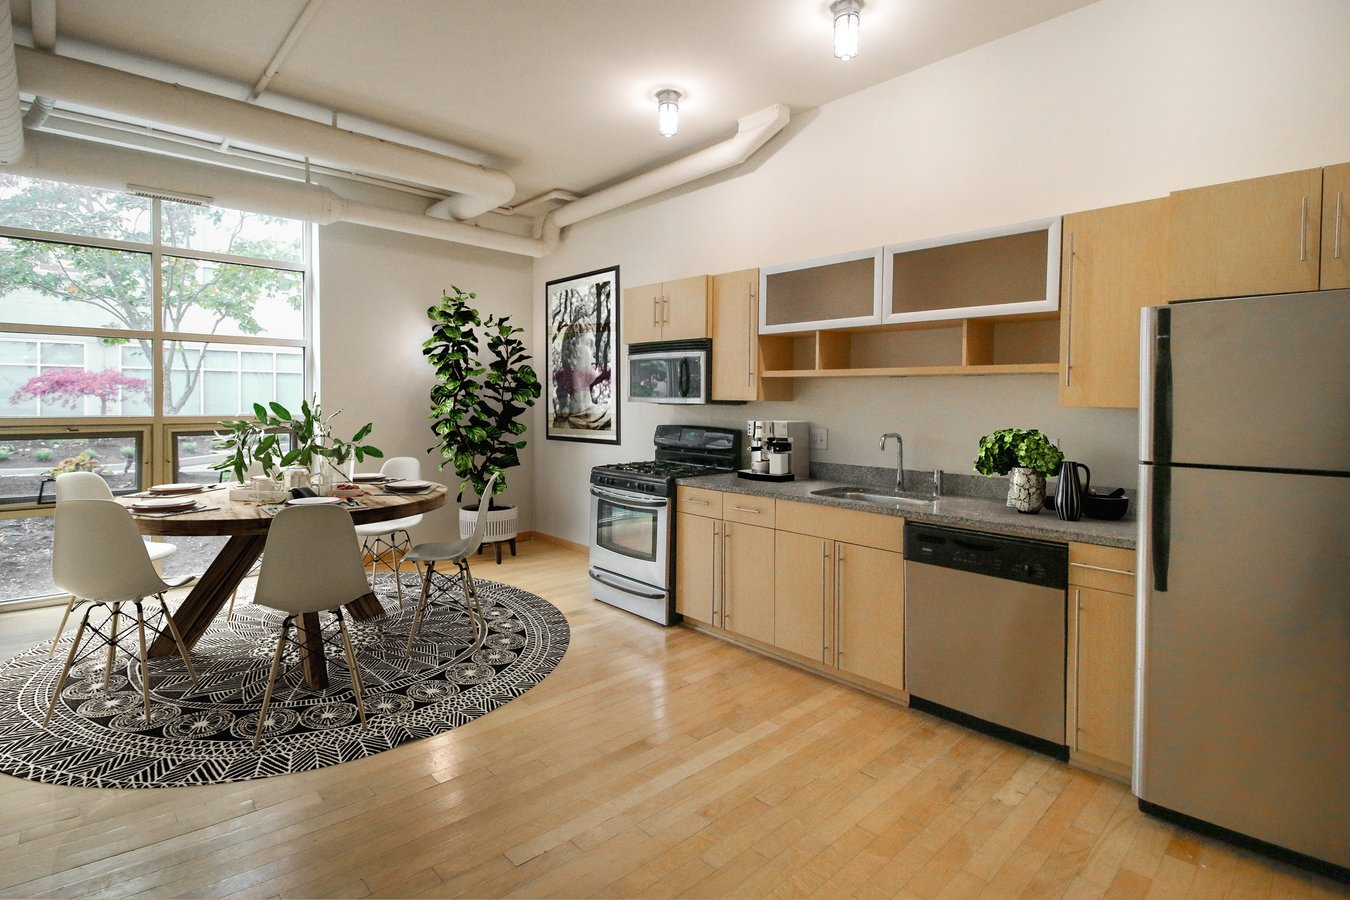 2 Bedrooms 3 Bathrooms Apartment for rent at Sixty Spring in Columbus, OH